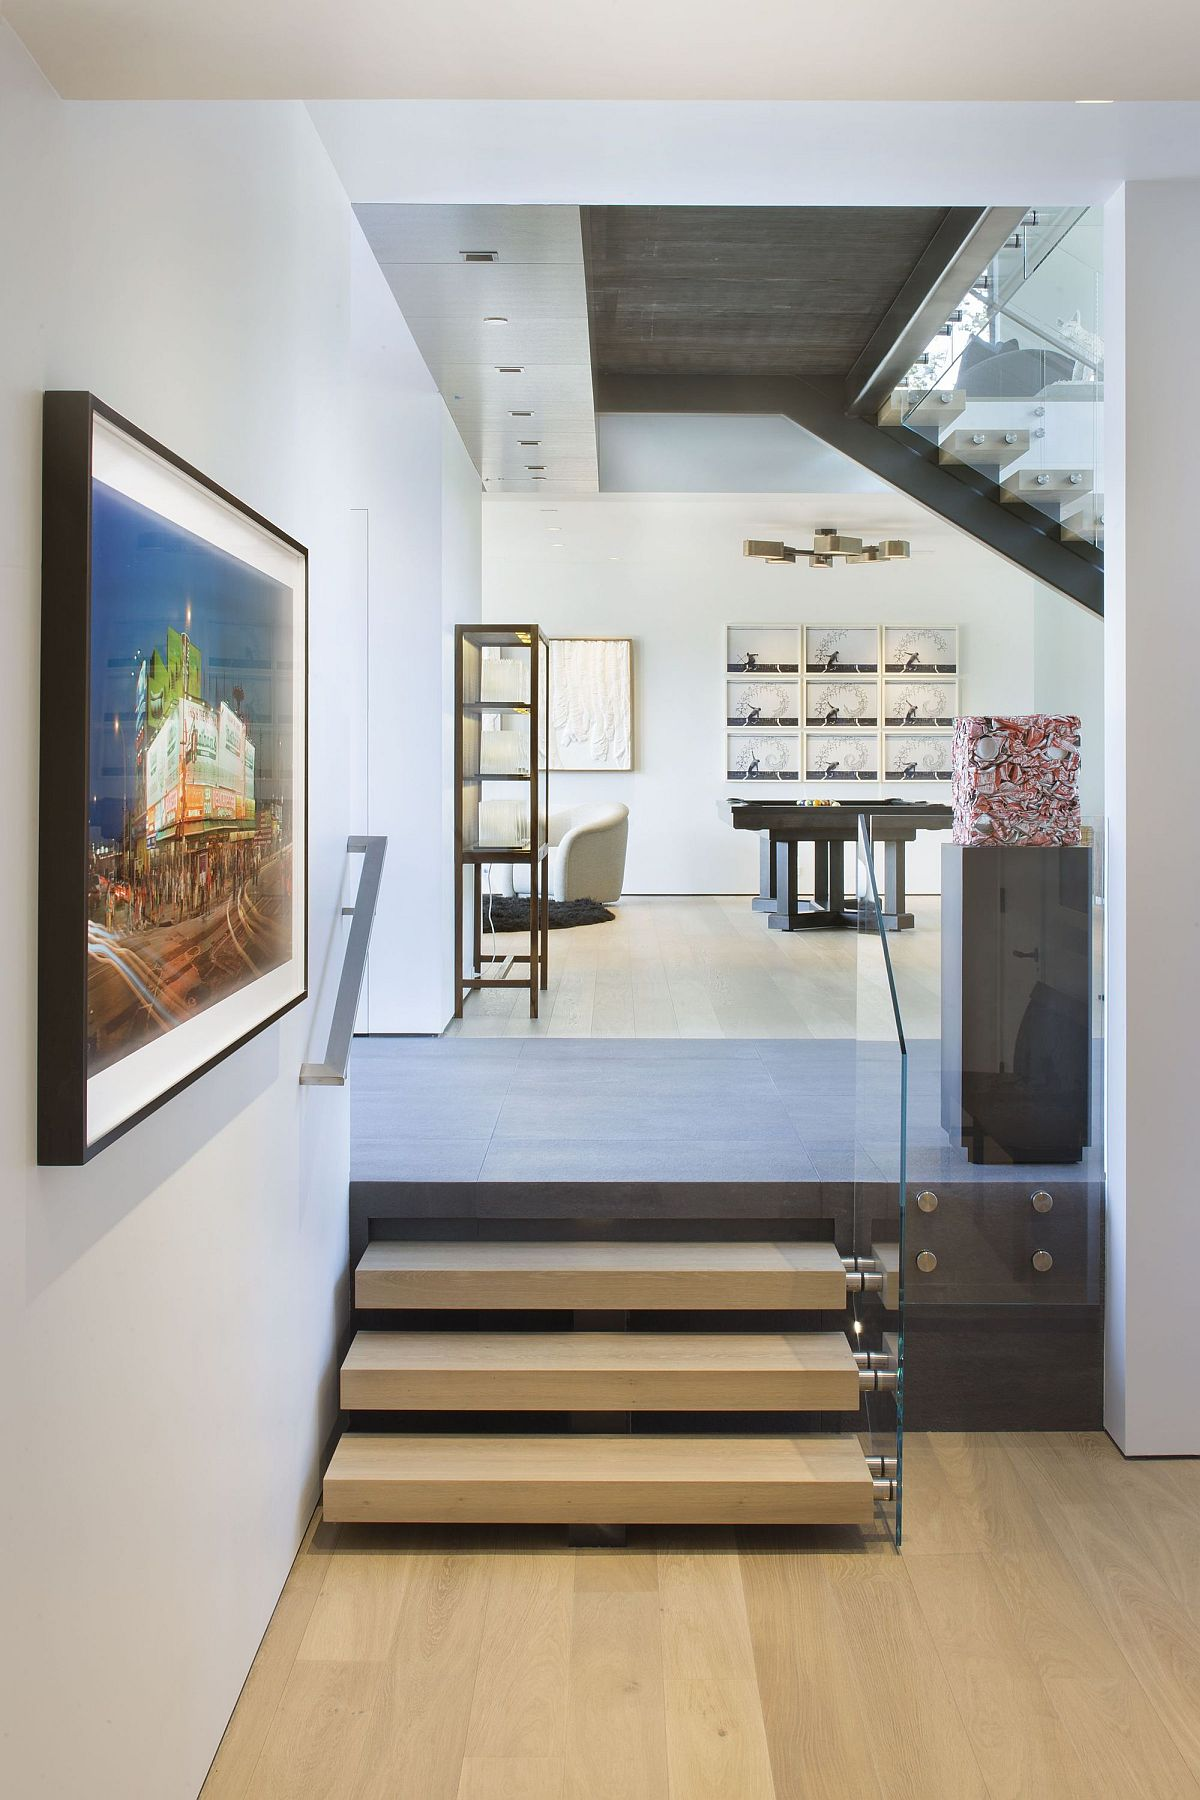 Blank-white-walls-throughout-the-house-are-used-to-display-the-lovely-art-collection-of-the-homeowner-49902